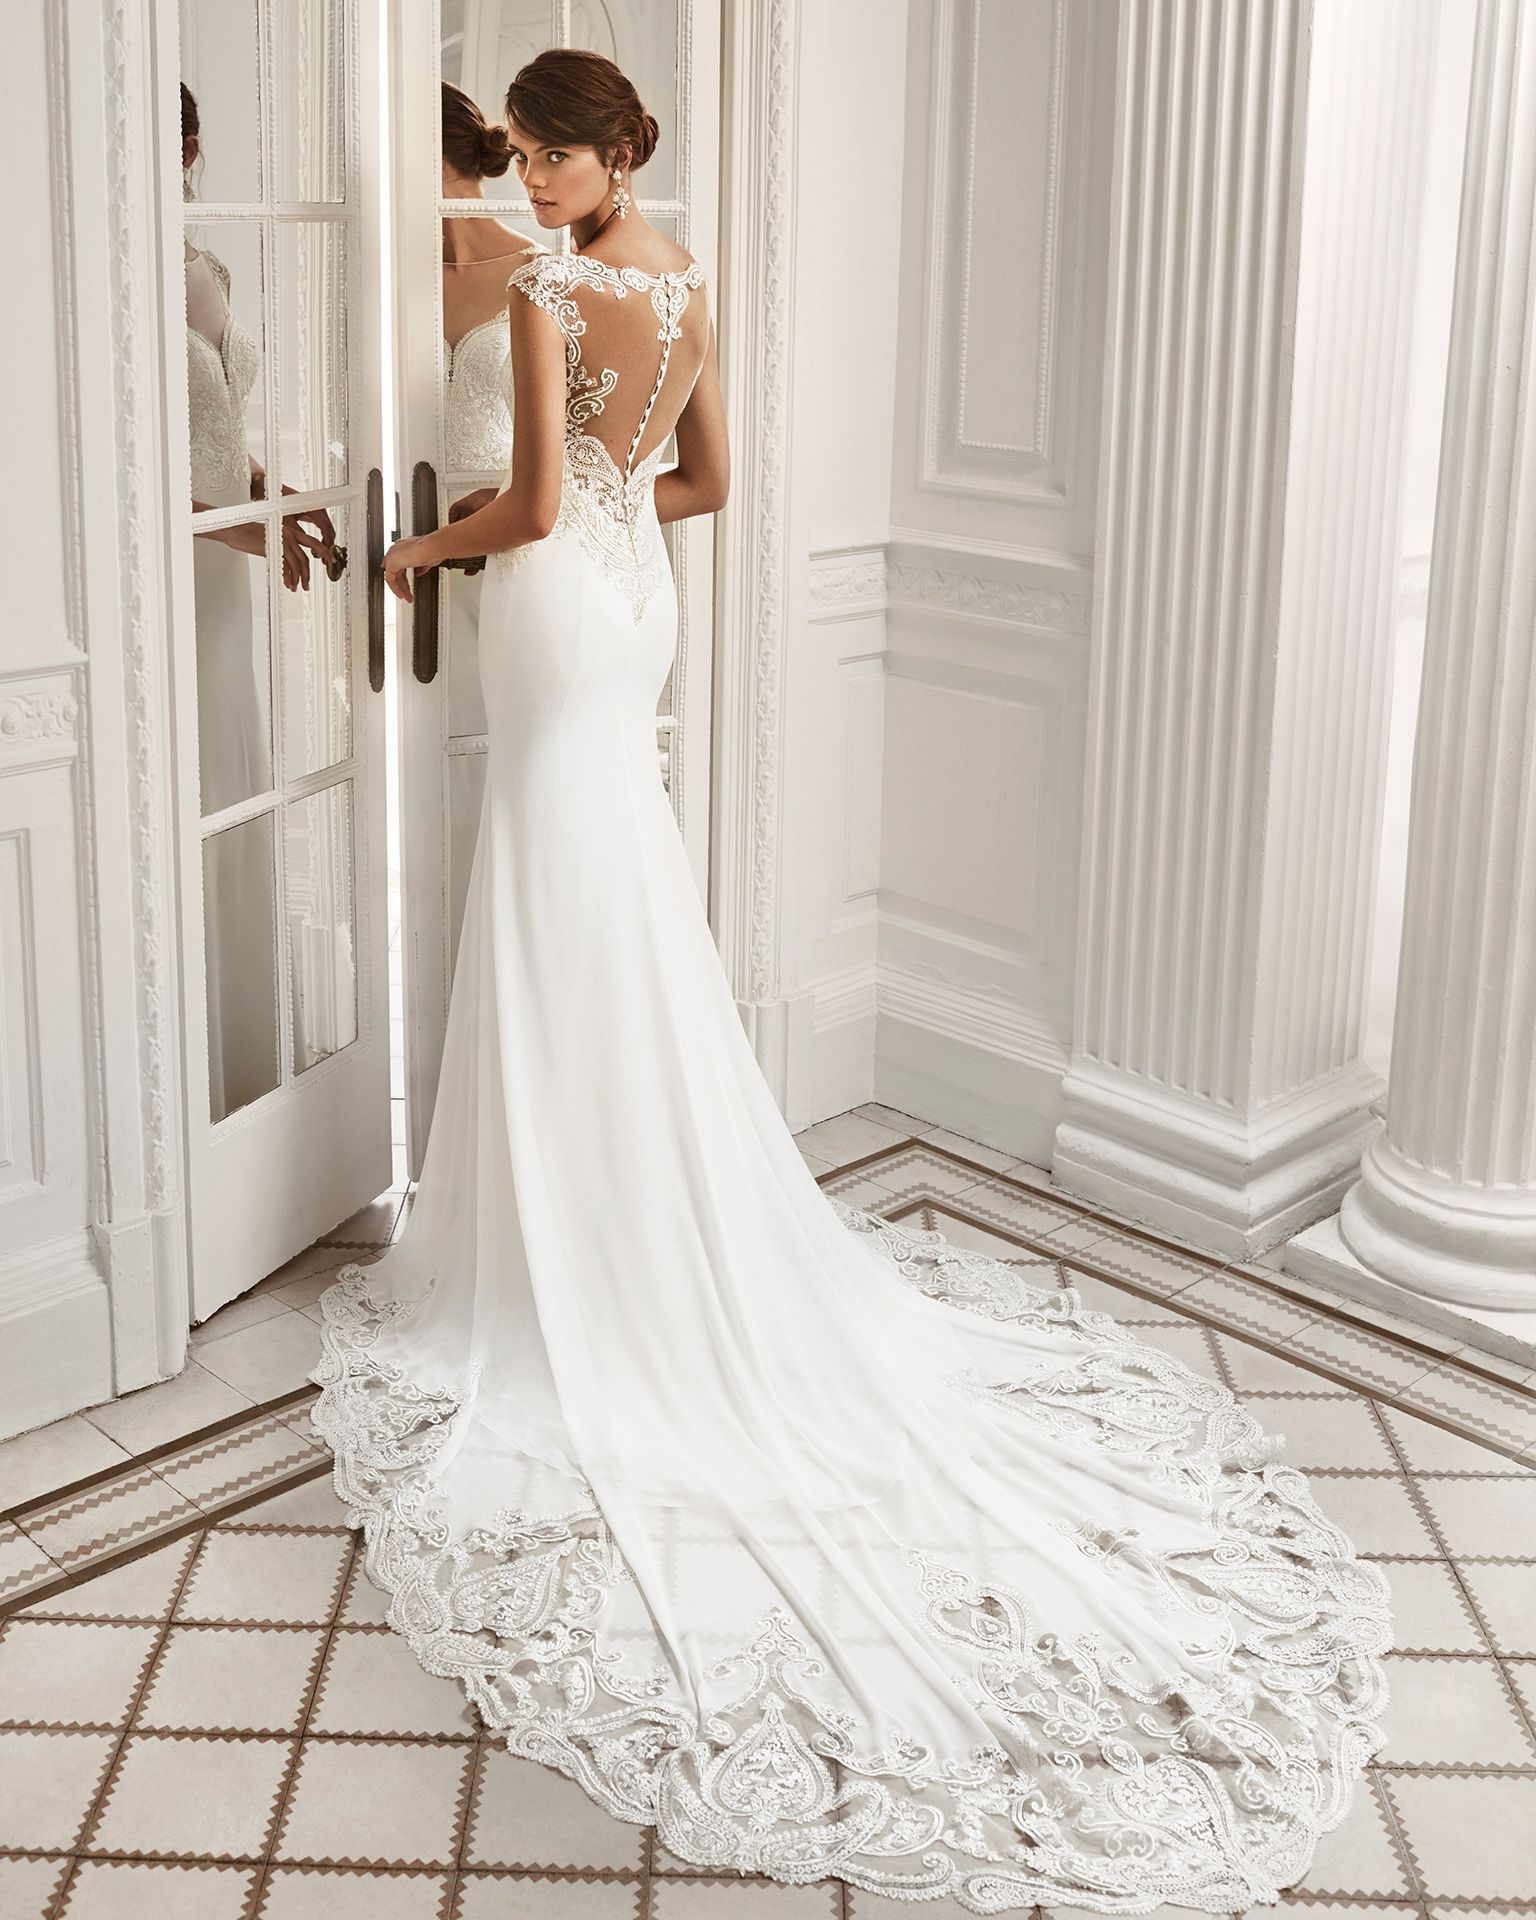 Mermaid Style Crepe Georgette And Lace Wedding Dress With Deep Plunge Neckline Low Back